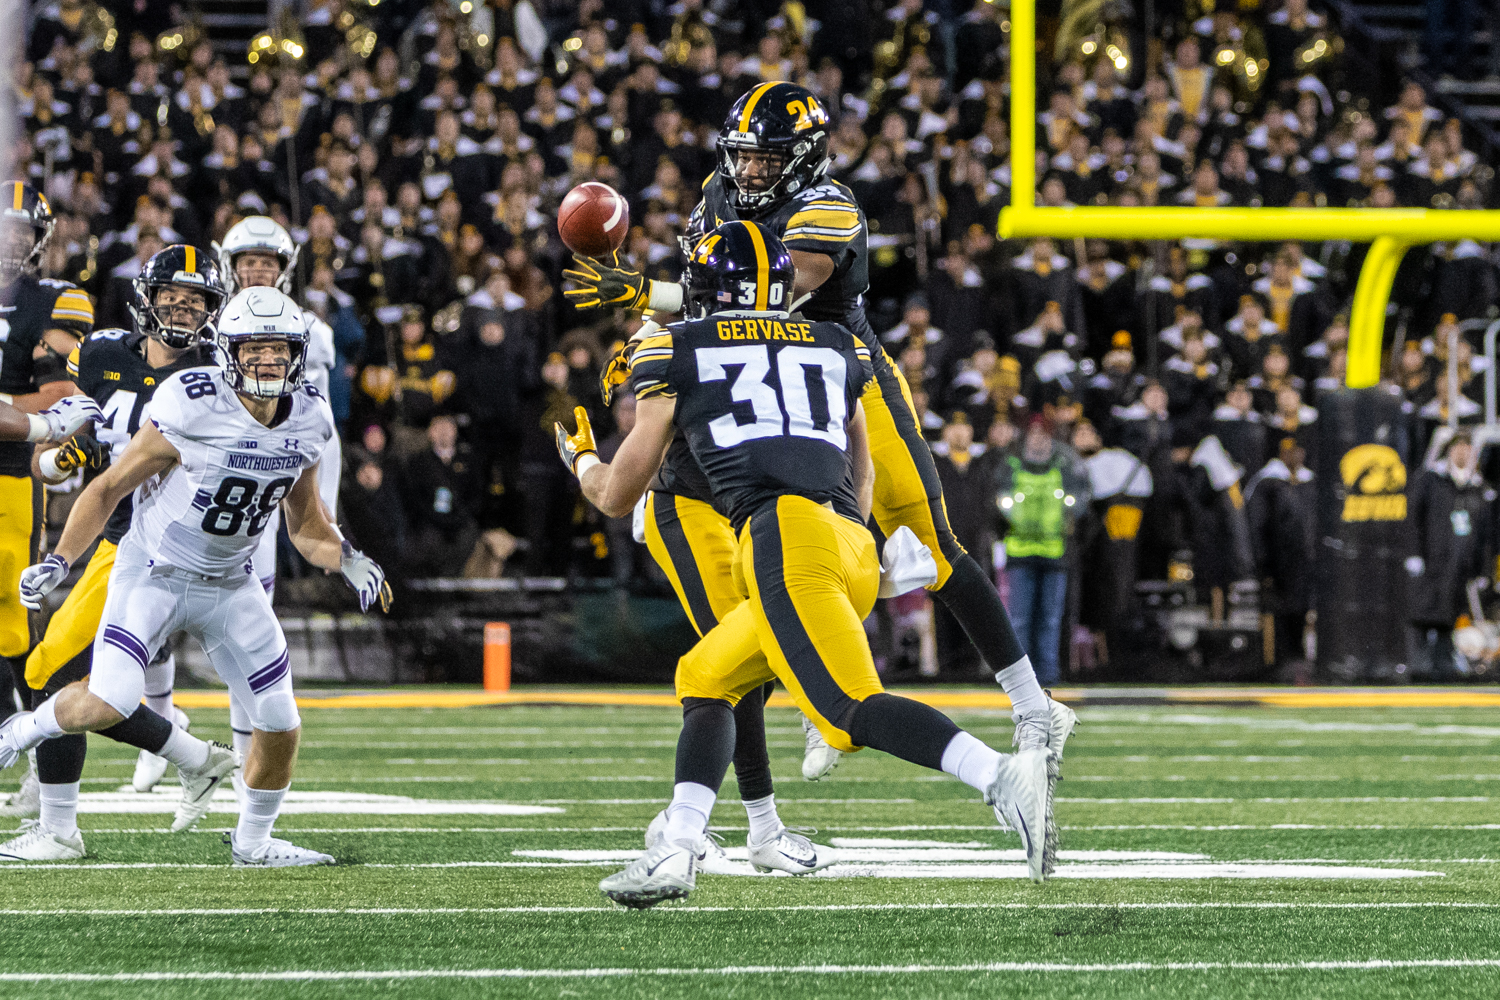 Iowa+defensive+back+Jake+Gervase+%2330+prepares+to+intercept+the+ball+during+a+game+against+Northwestern+University+on+Saturday%2C+Nov.+10%2C+2018+at+Kinnick+Stadium+in+Iowa+City.+The+Wildcats+defeated+the+Hawkeyes+14-10.+%28David+Harmantas%2FThe+Daily+Iowan%29